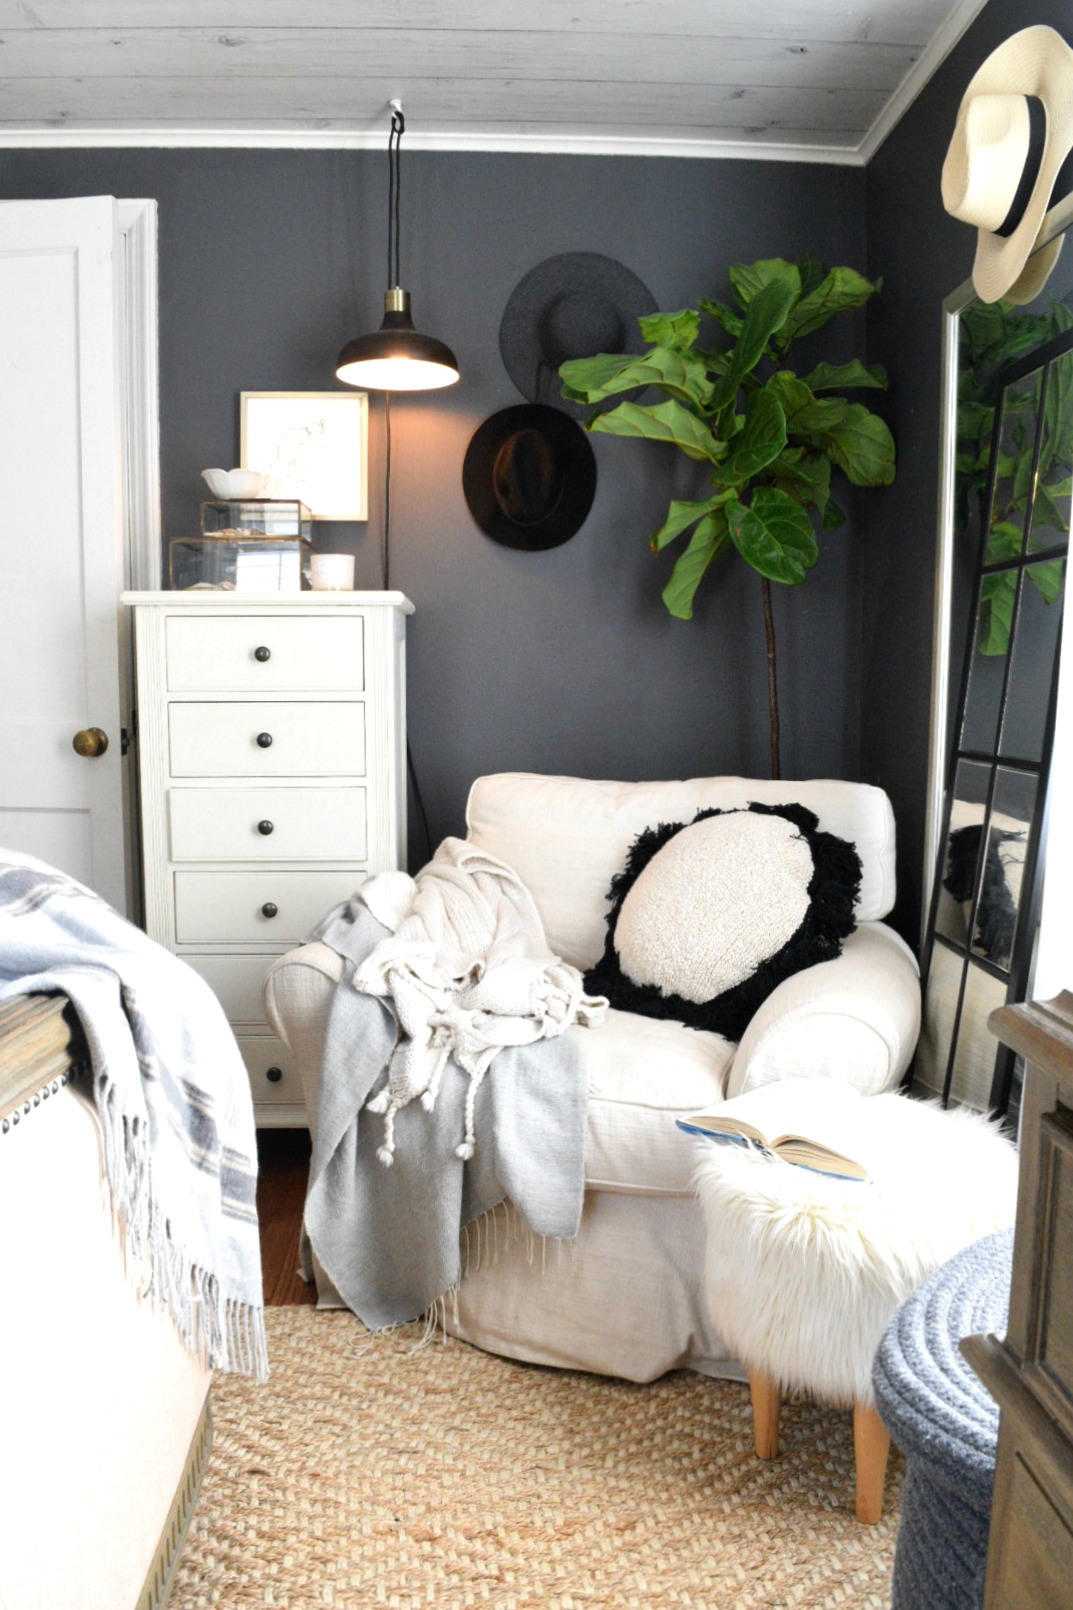 Small Space Living- Favorite Things